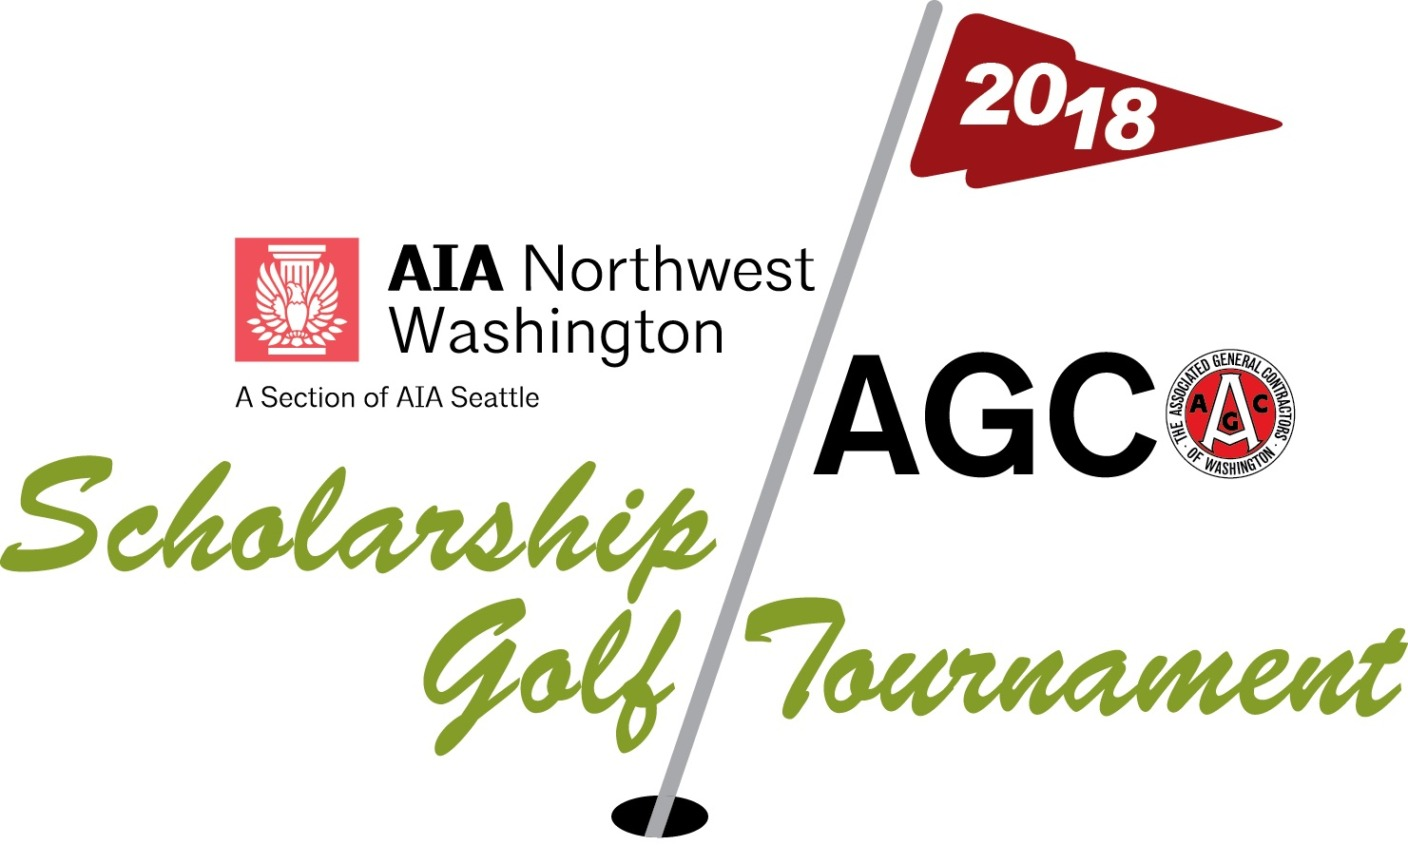 Join the Northwest Washington Chapter of the American Institute of Architects and the Associated General Contractors Northern District as we host the 2018 Scholarship Golf Tournament.